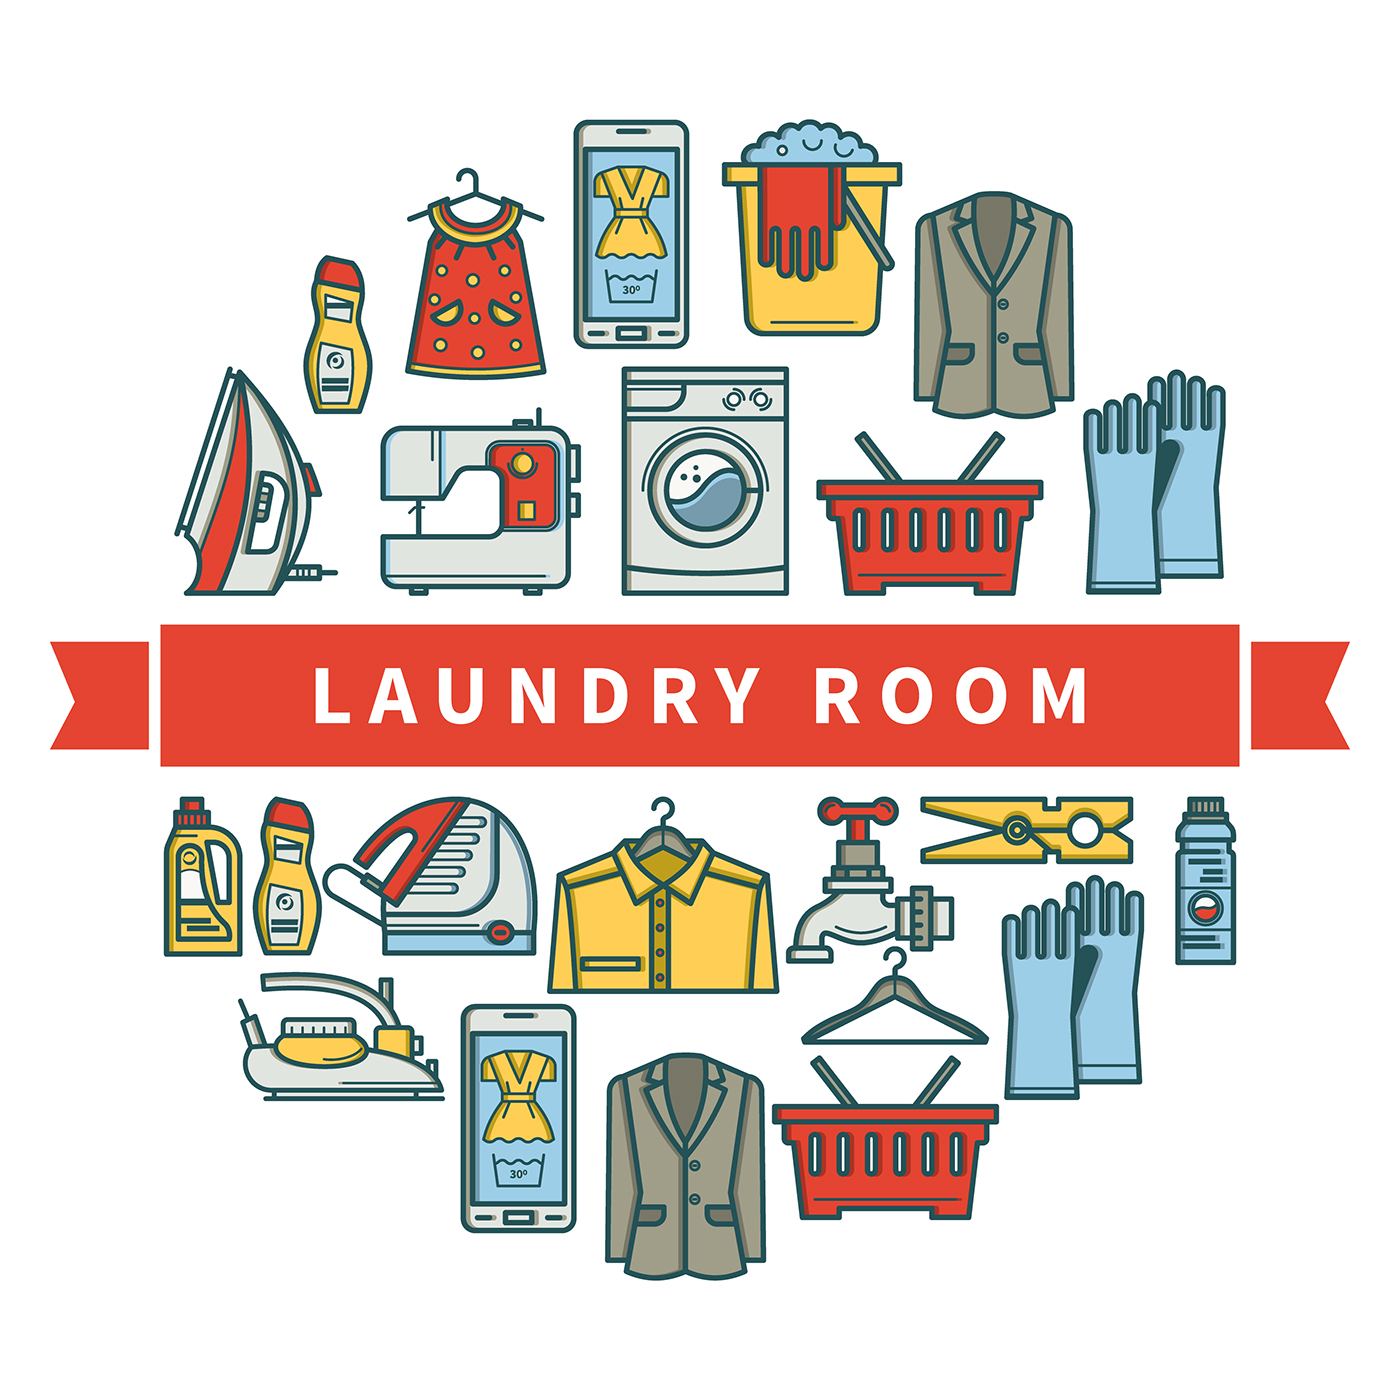 laundry room Icon line Washing machine detergent dry cleaning